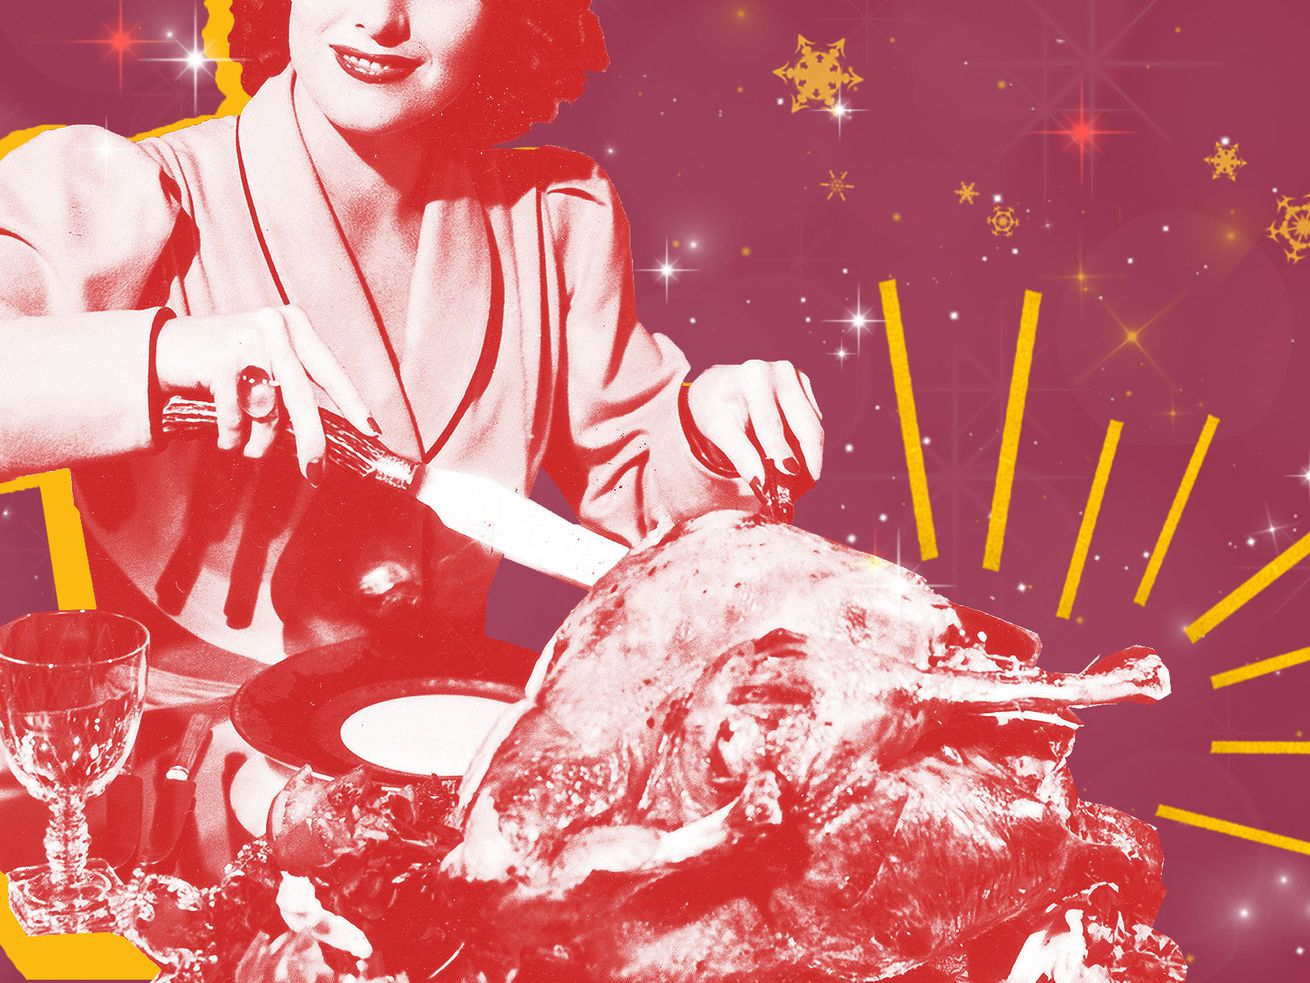 Retro image of a woman cutting into a turkey.